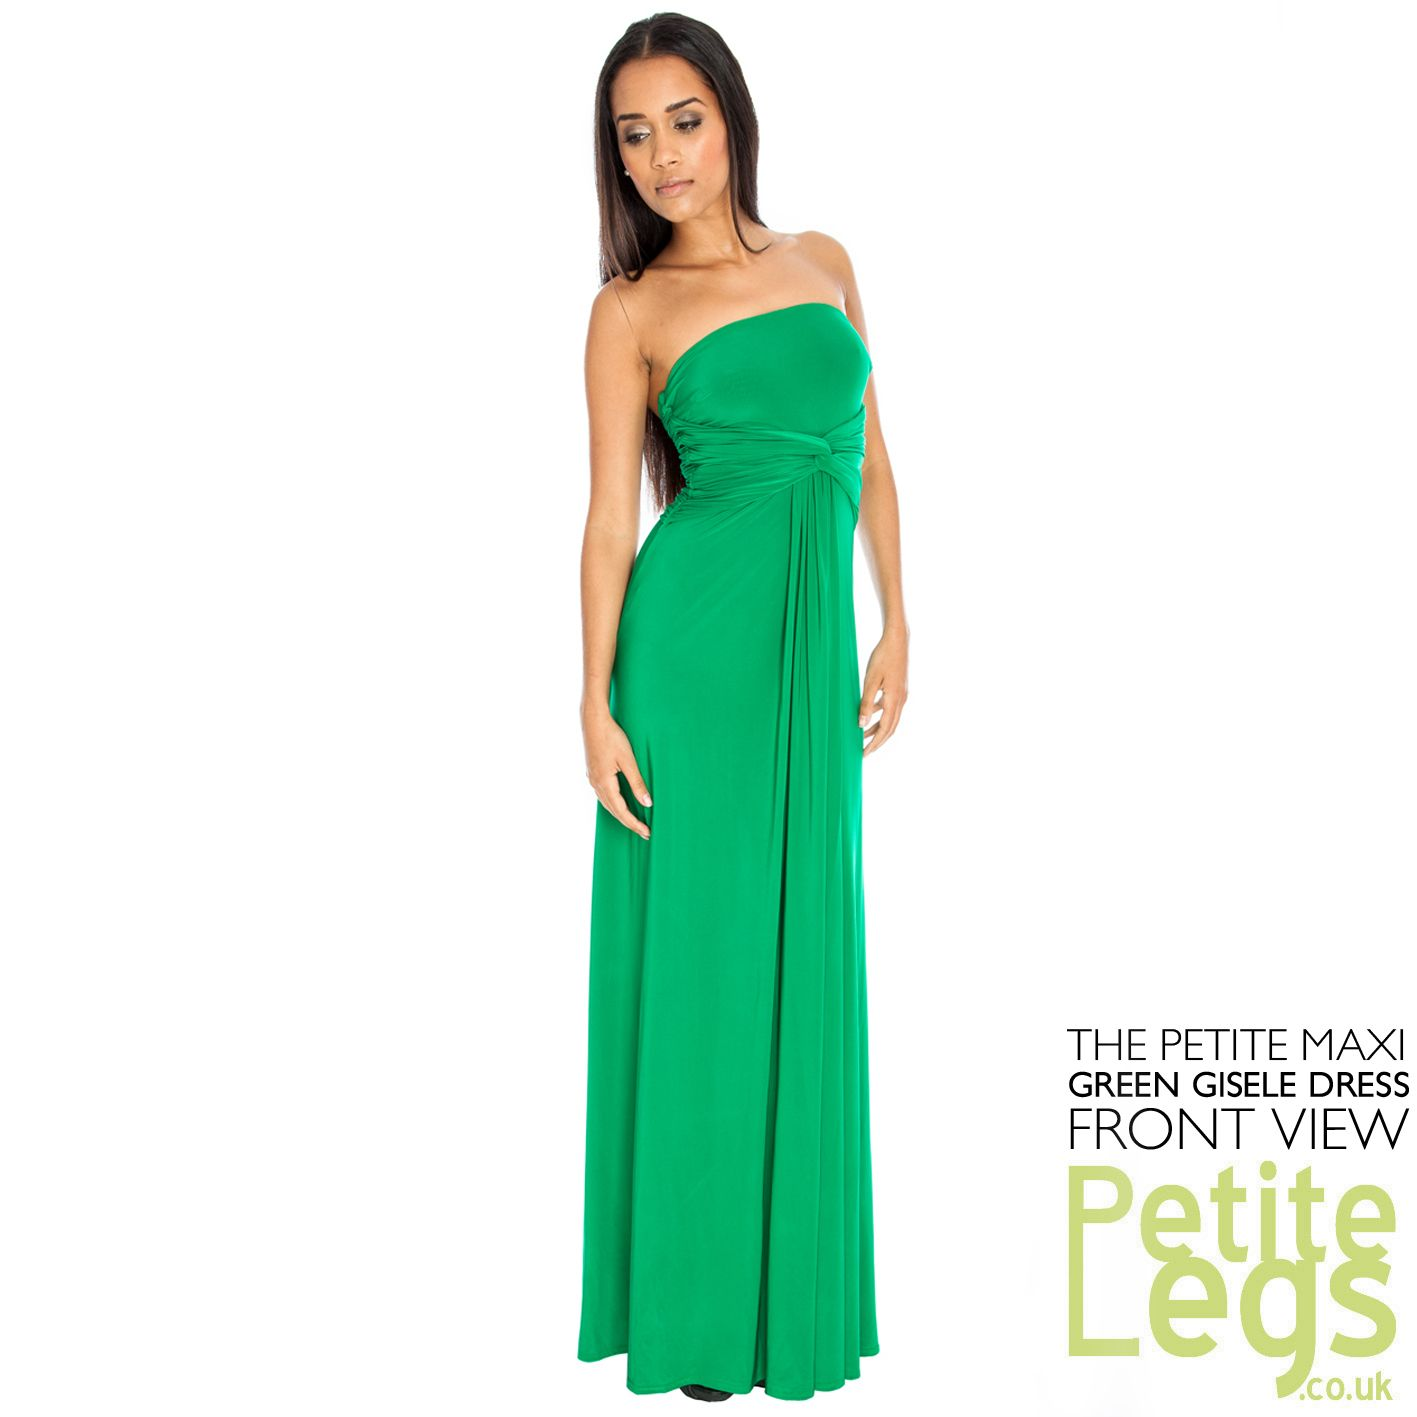 Shop our petite women's dresses for casual, cocktail and black-tie formal events. Try Adrianna Papell or Alex Evenings dresses for your next party and flattering lace and chiffon gowns or jacket dresses for any elegant special occasion.